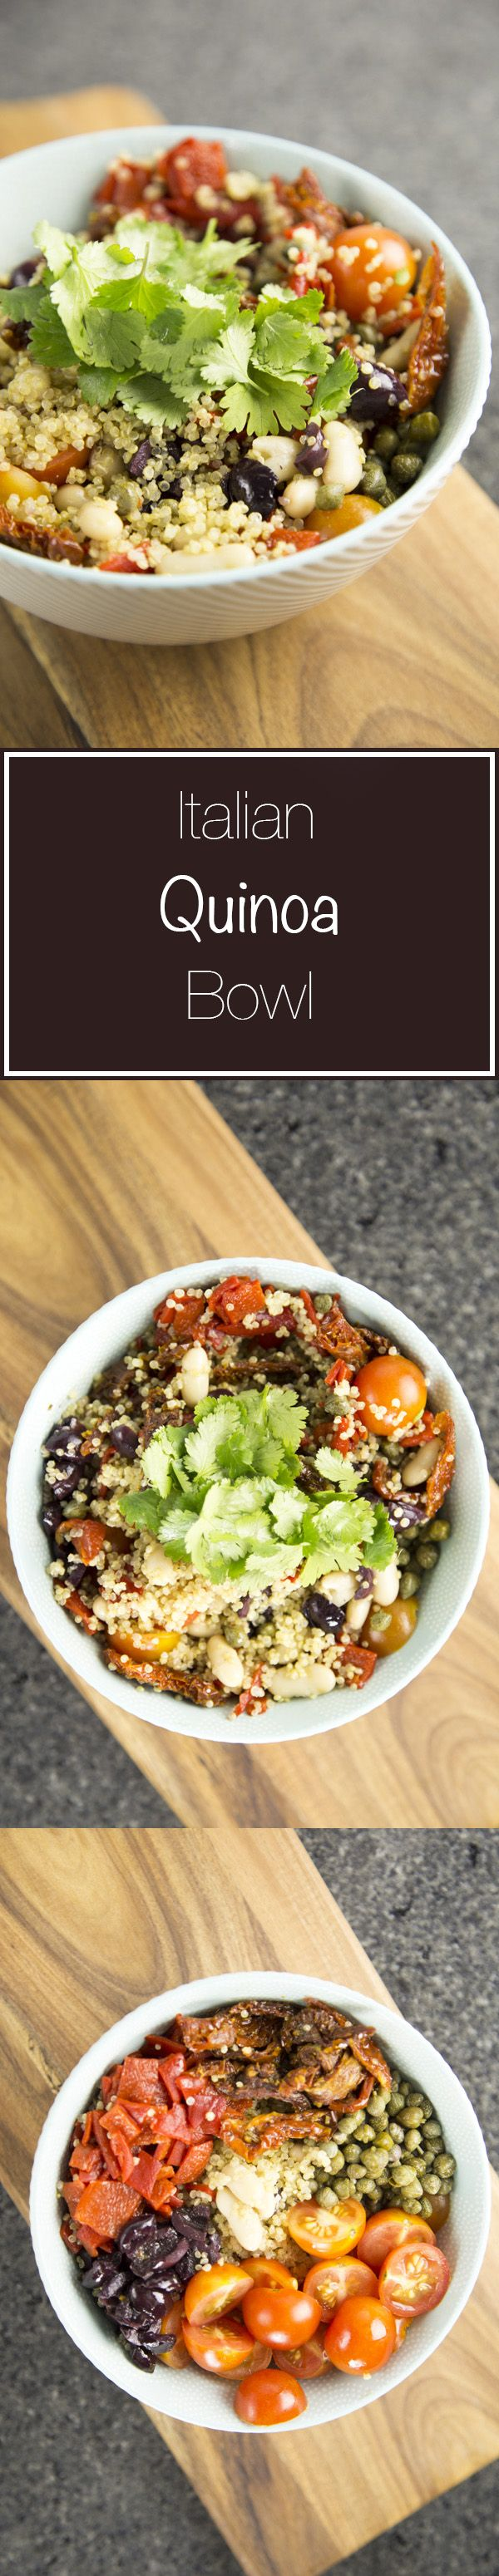 A fresh and salty Italian quinoa bowl. This bowl is filled with all the comforting strong flavours from Italian food but is light enough to eat for lunch.